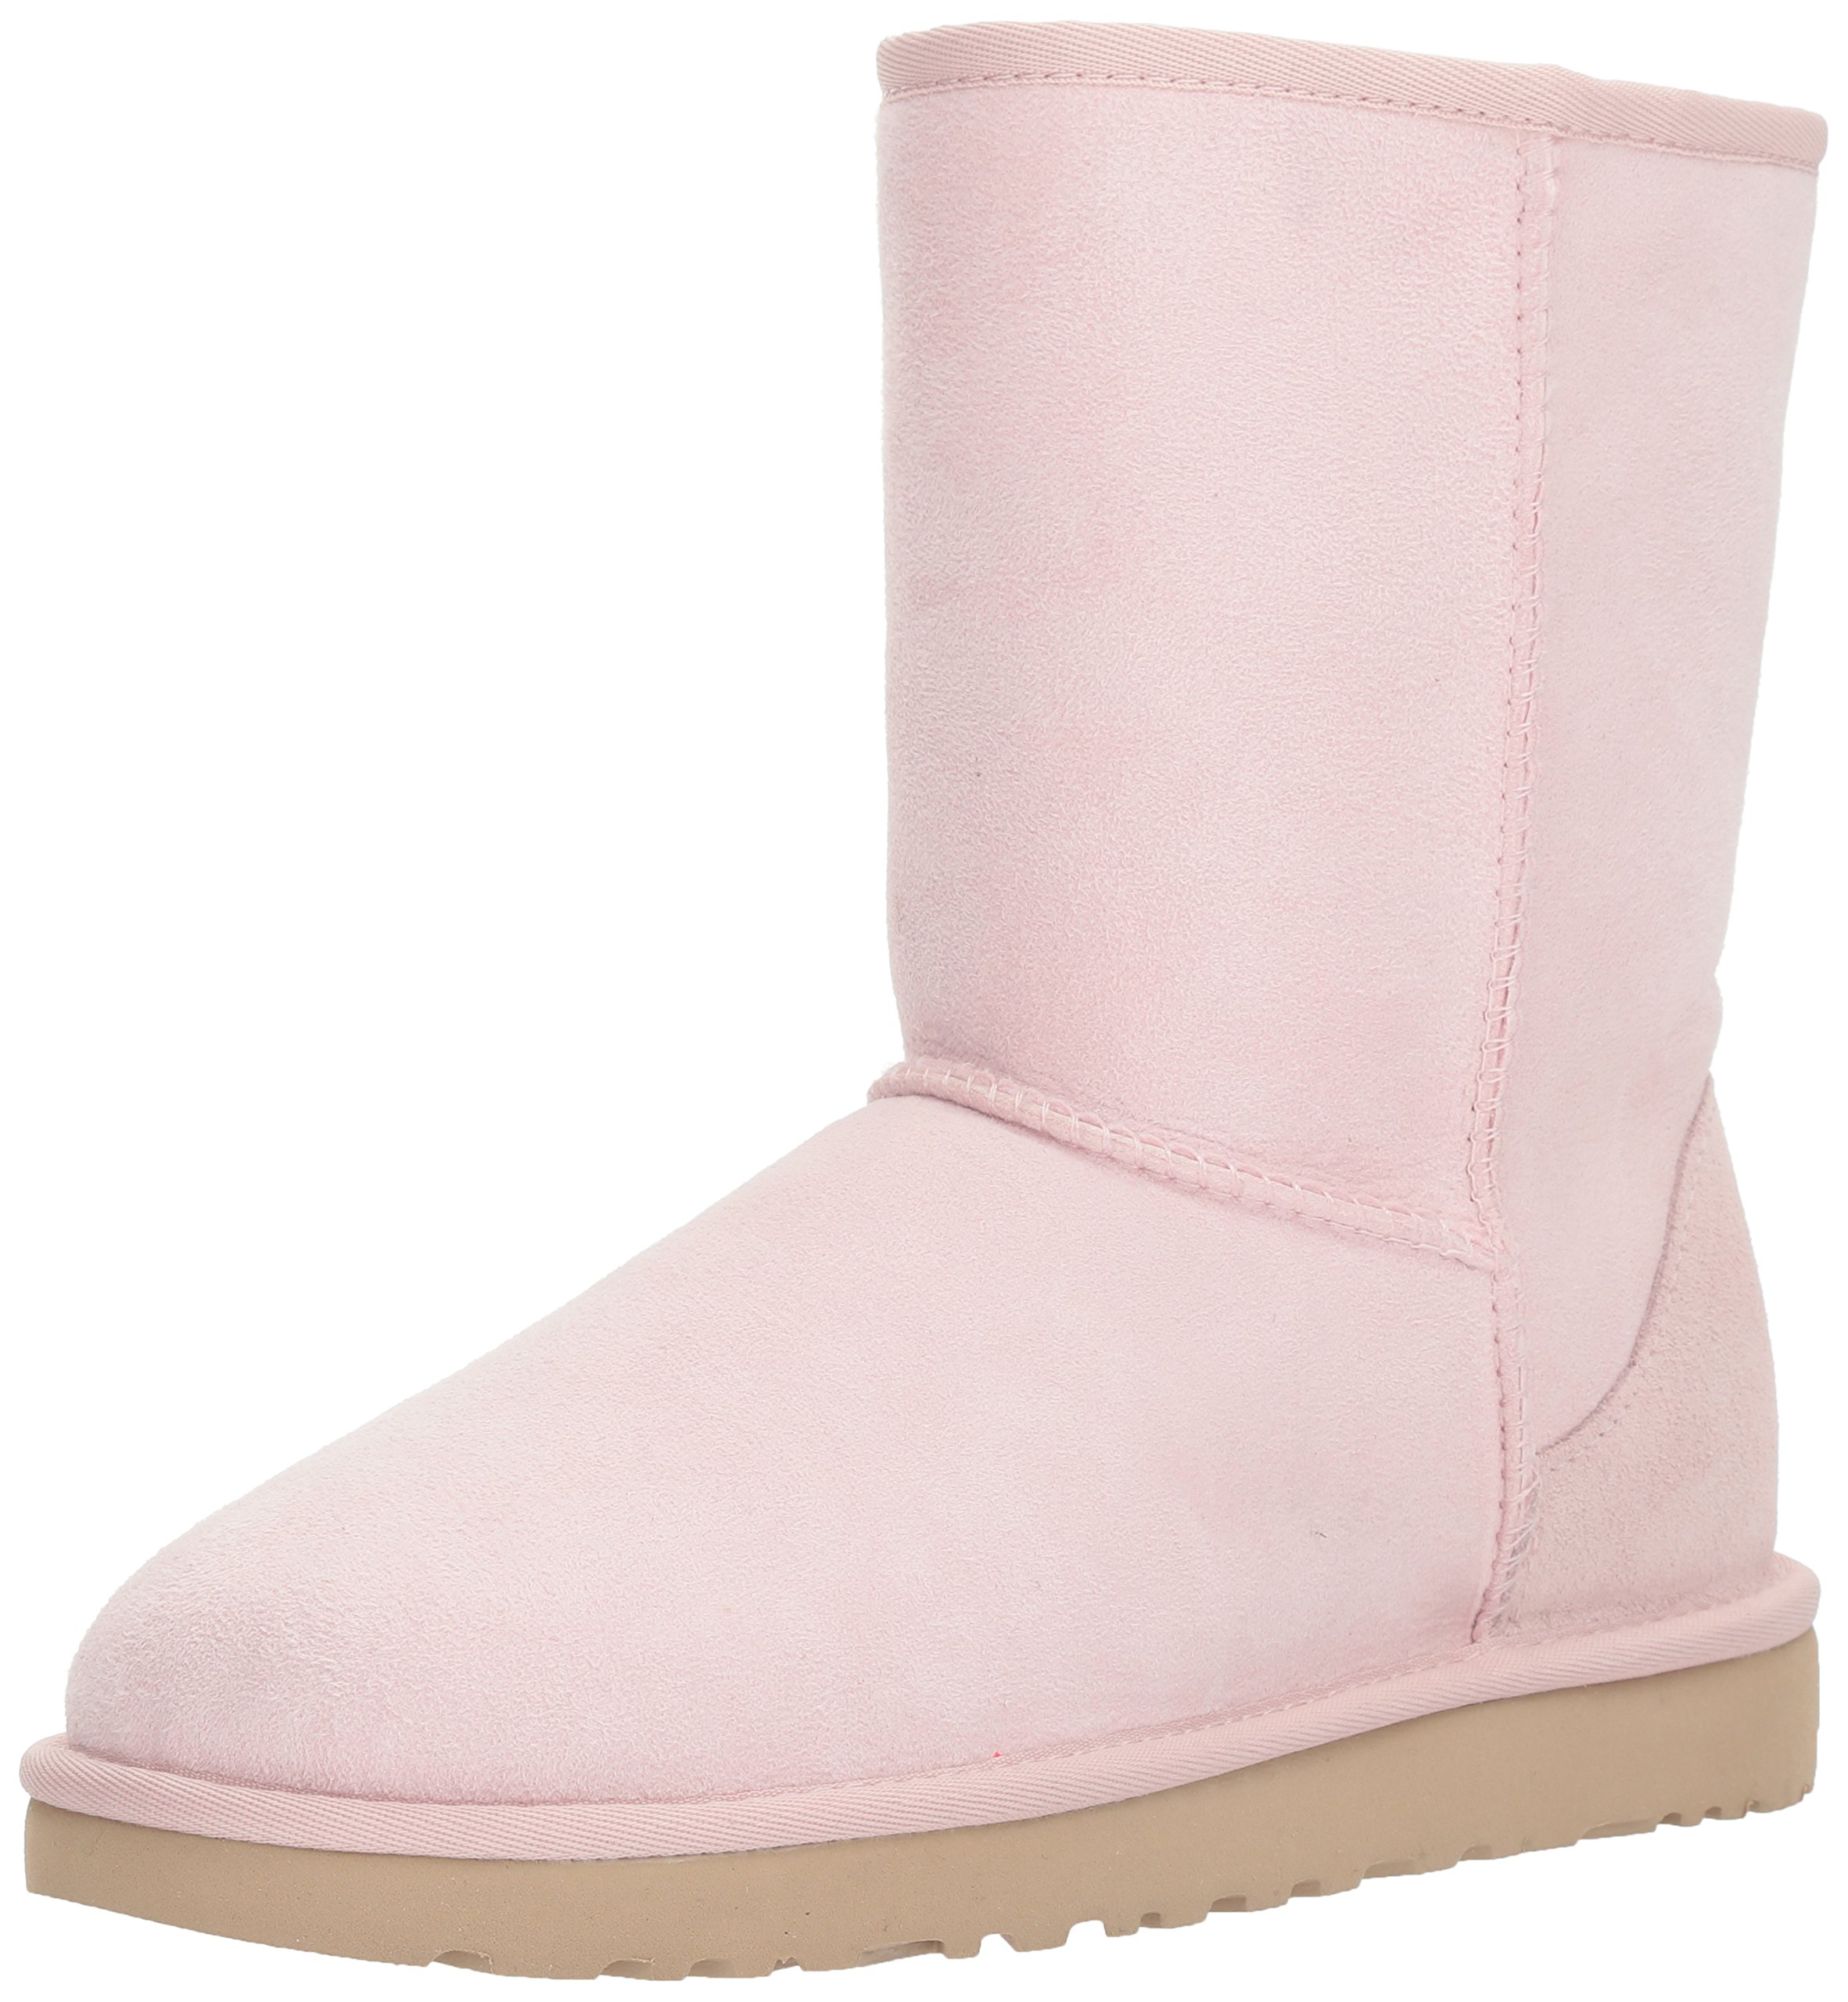 UGG Women's Classic Short II Fashion Boot, Seashell Pink, 8 M US